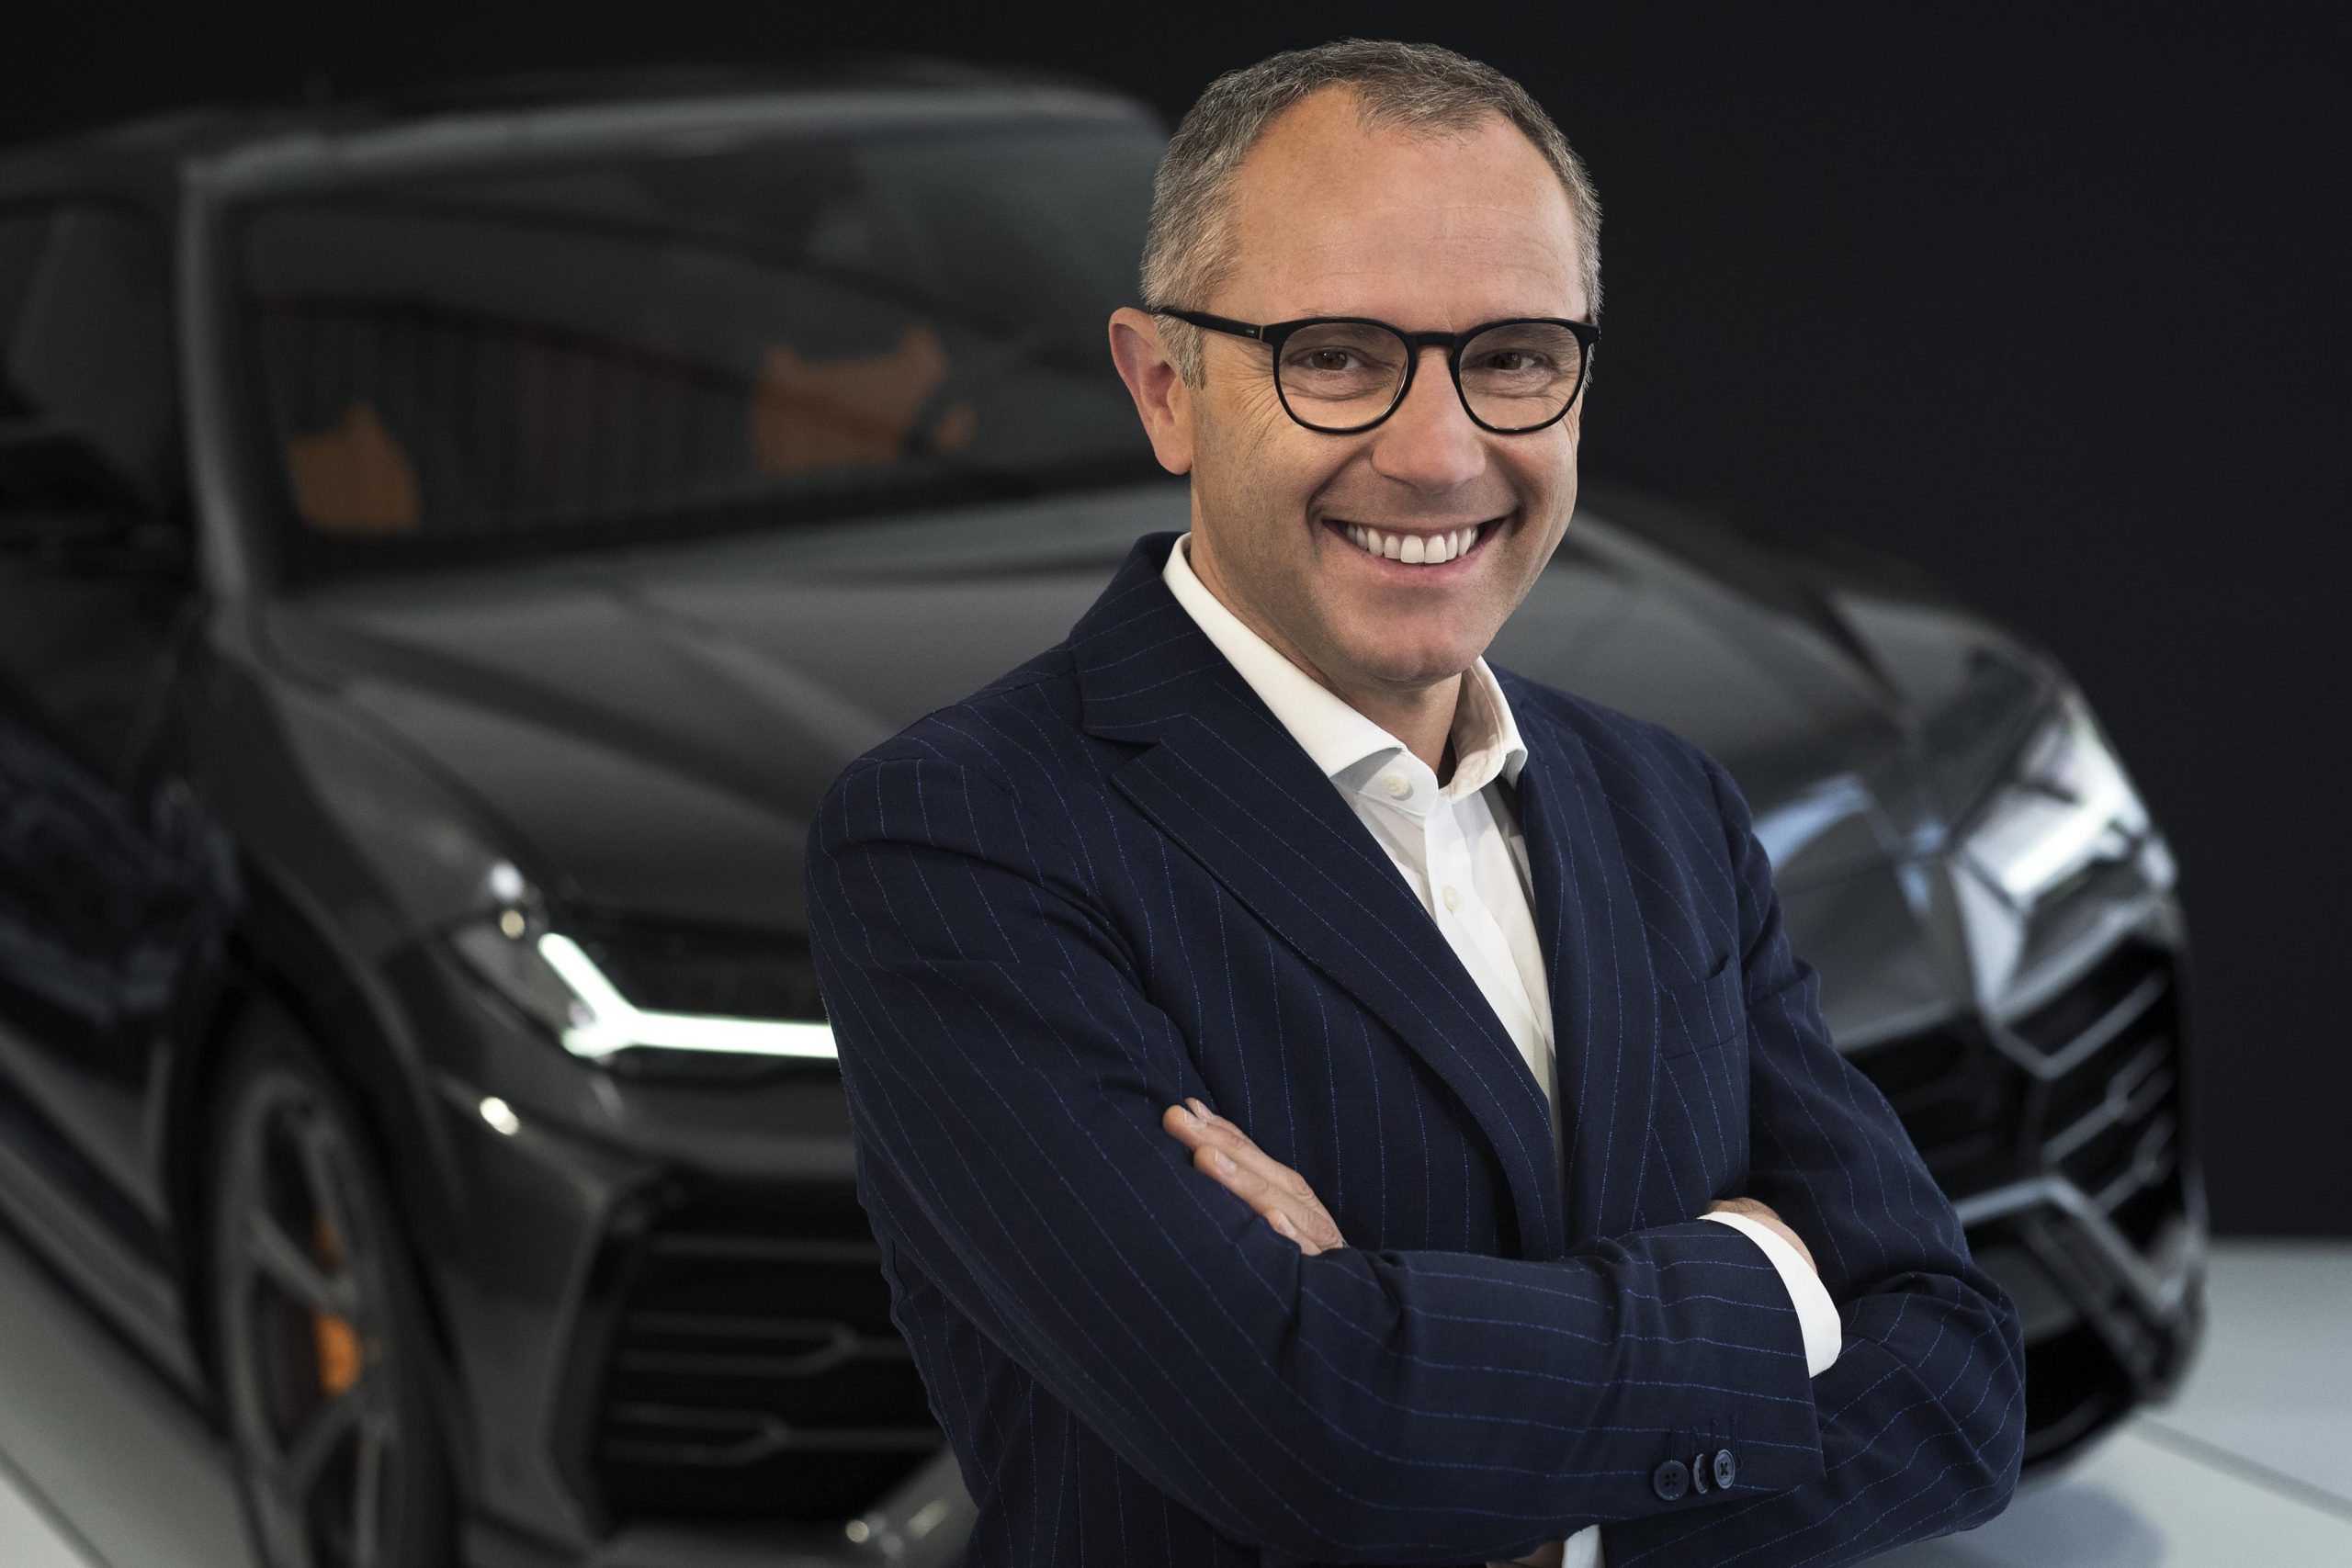 Stefano Domenicali returns to Formula 1